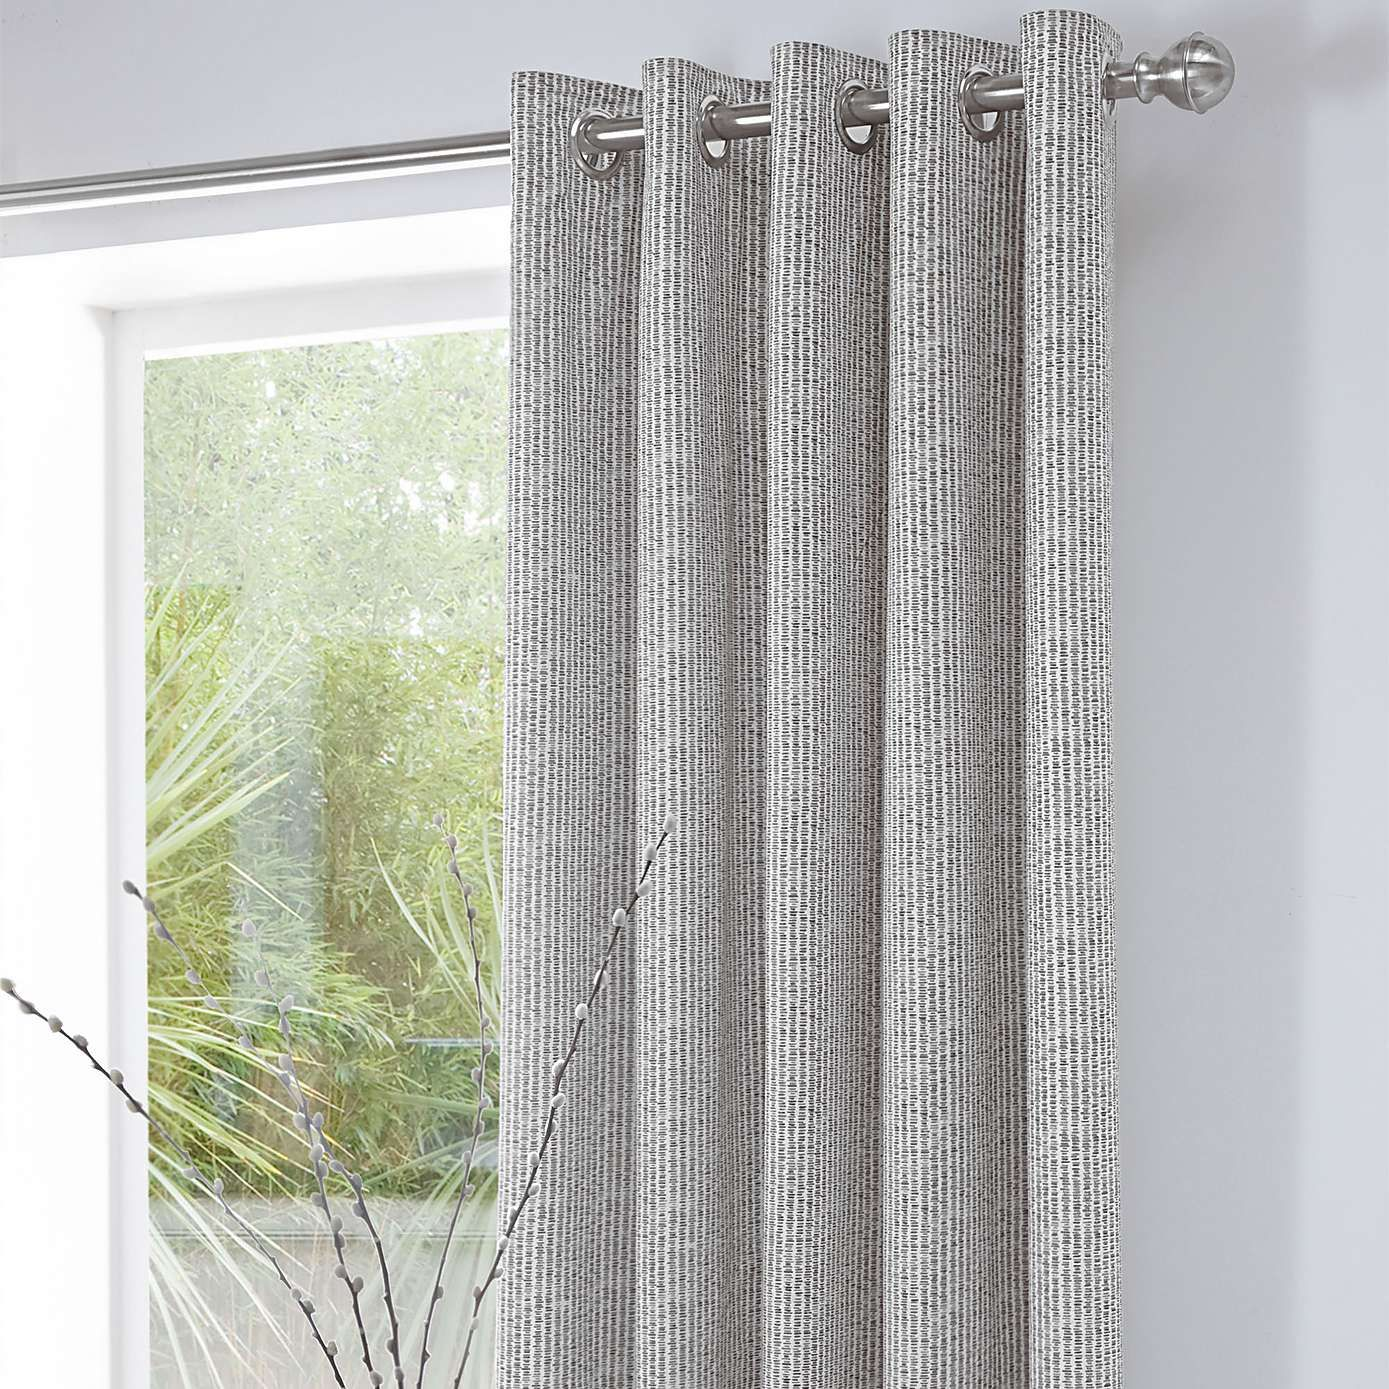 Dunelm Bathroom Accessories Charcoal Asha Thermal Eyelet Curtains Dunelm Living Room